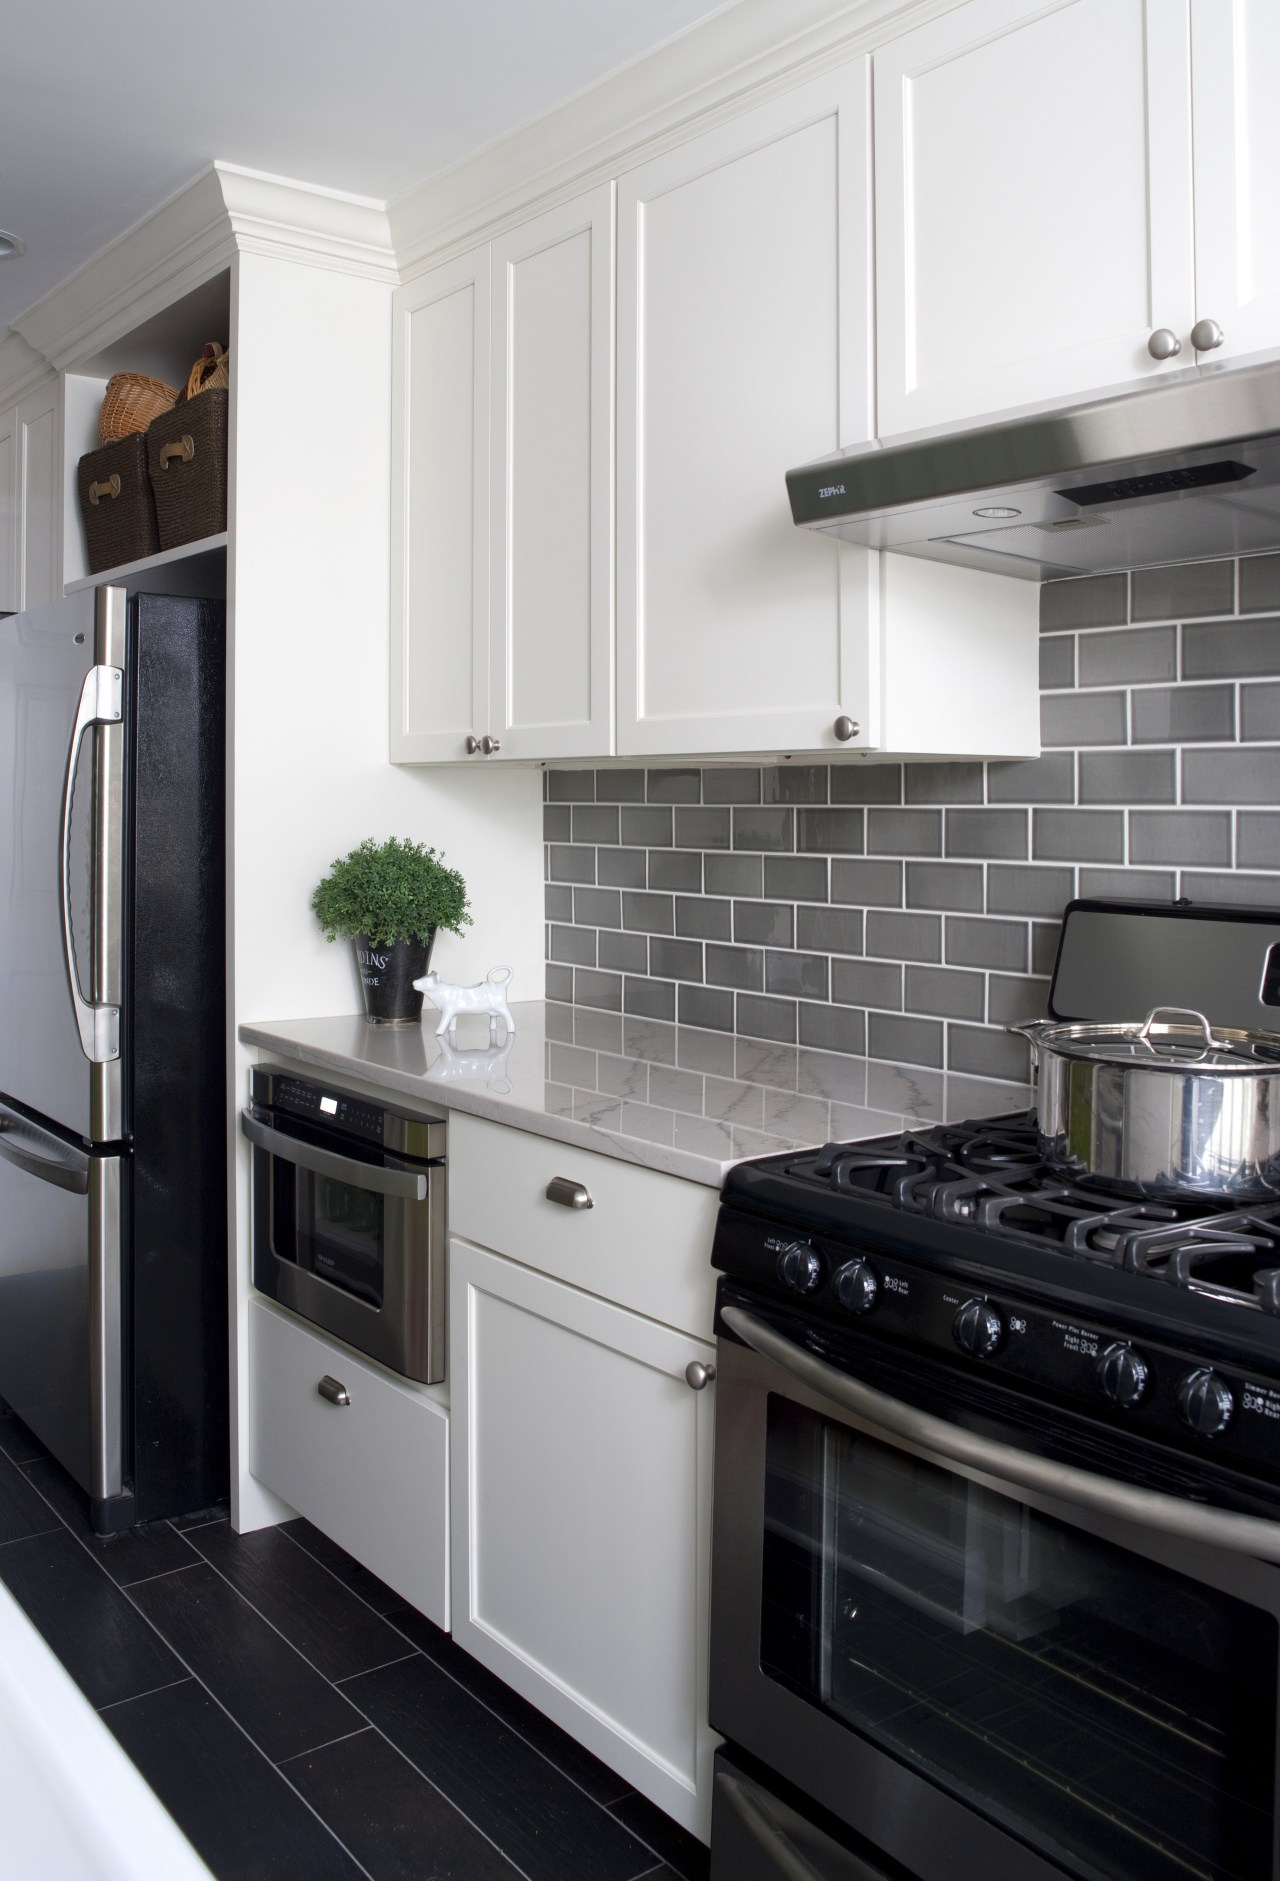 A small work triangle provides a highly efficient cabinetry, countertop, cuisine classique, gas stove, home, home appliance, interior design, kitchen, kitchen appliance, kitchen stove, major appliance, microwave oven, refrigerator, room, white, black